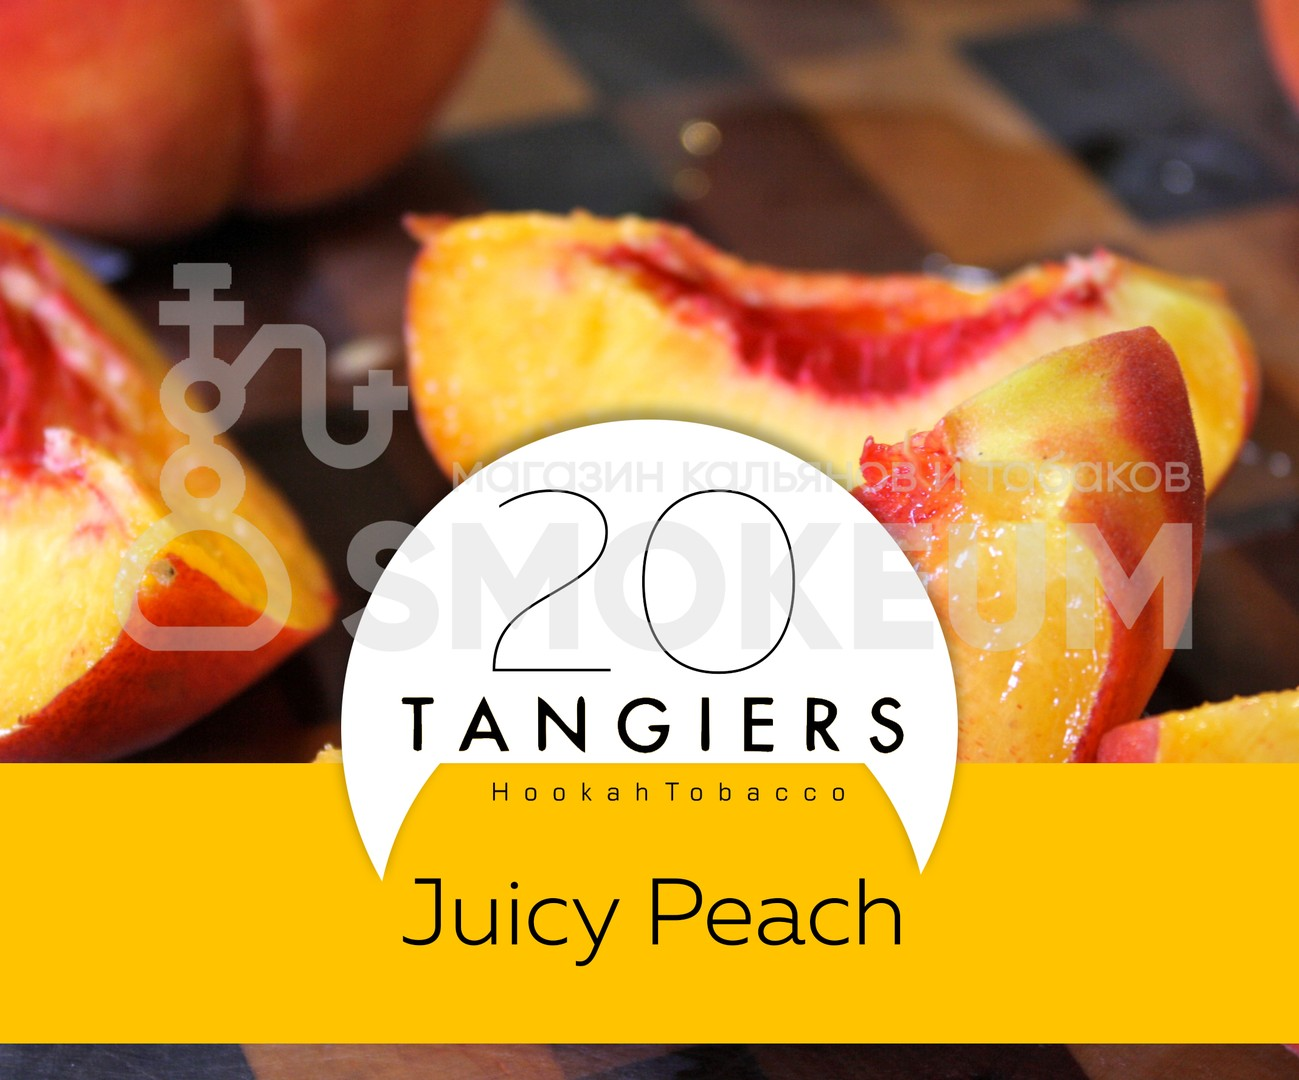 Табак Tangiers - Juicy Peach Noir (Персик) 250 гр